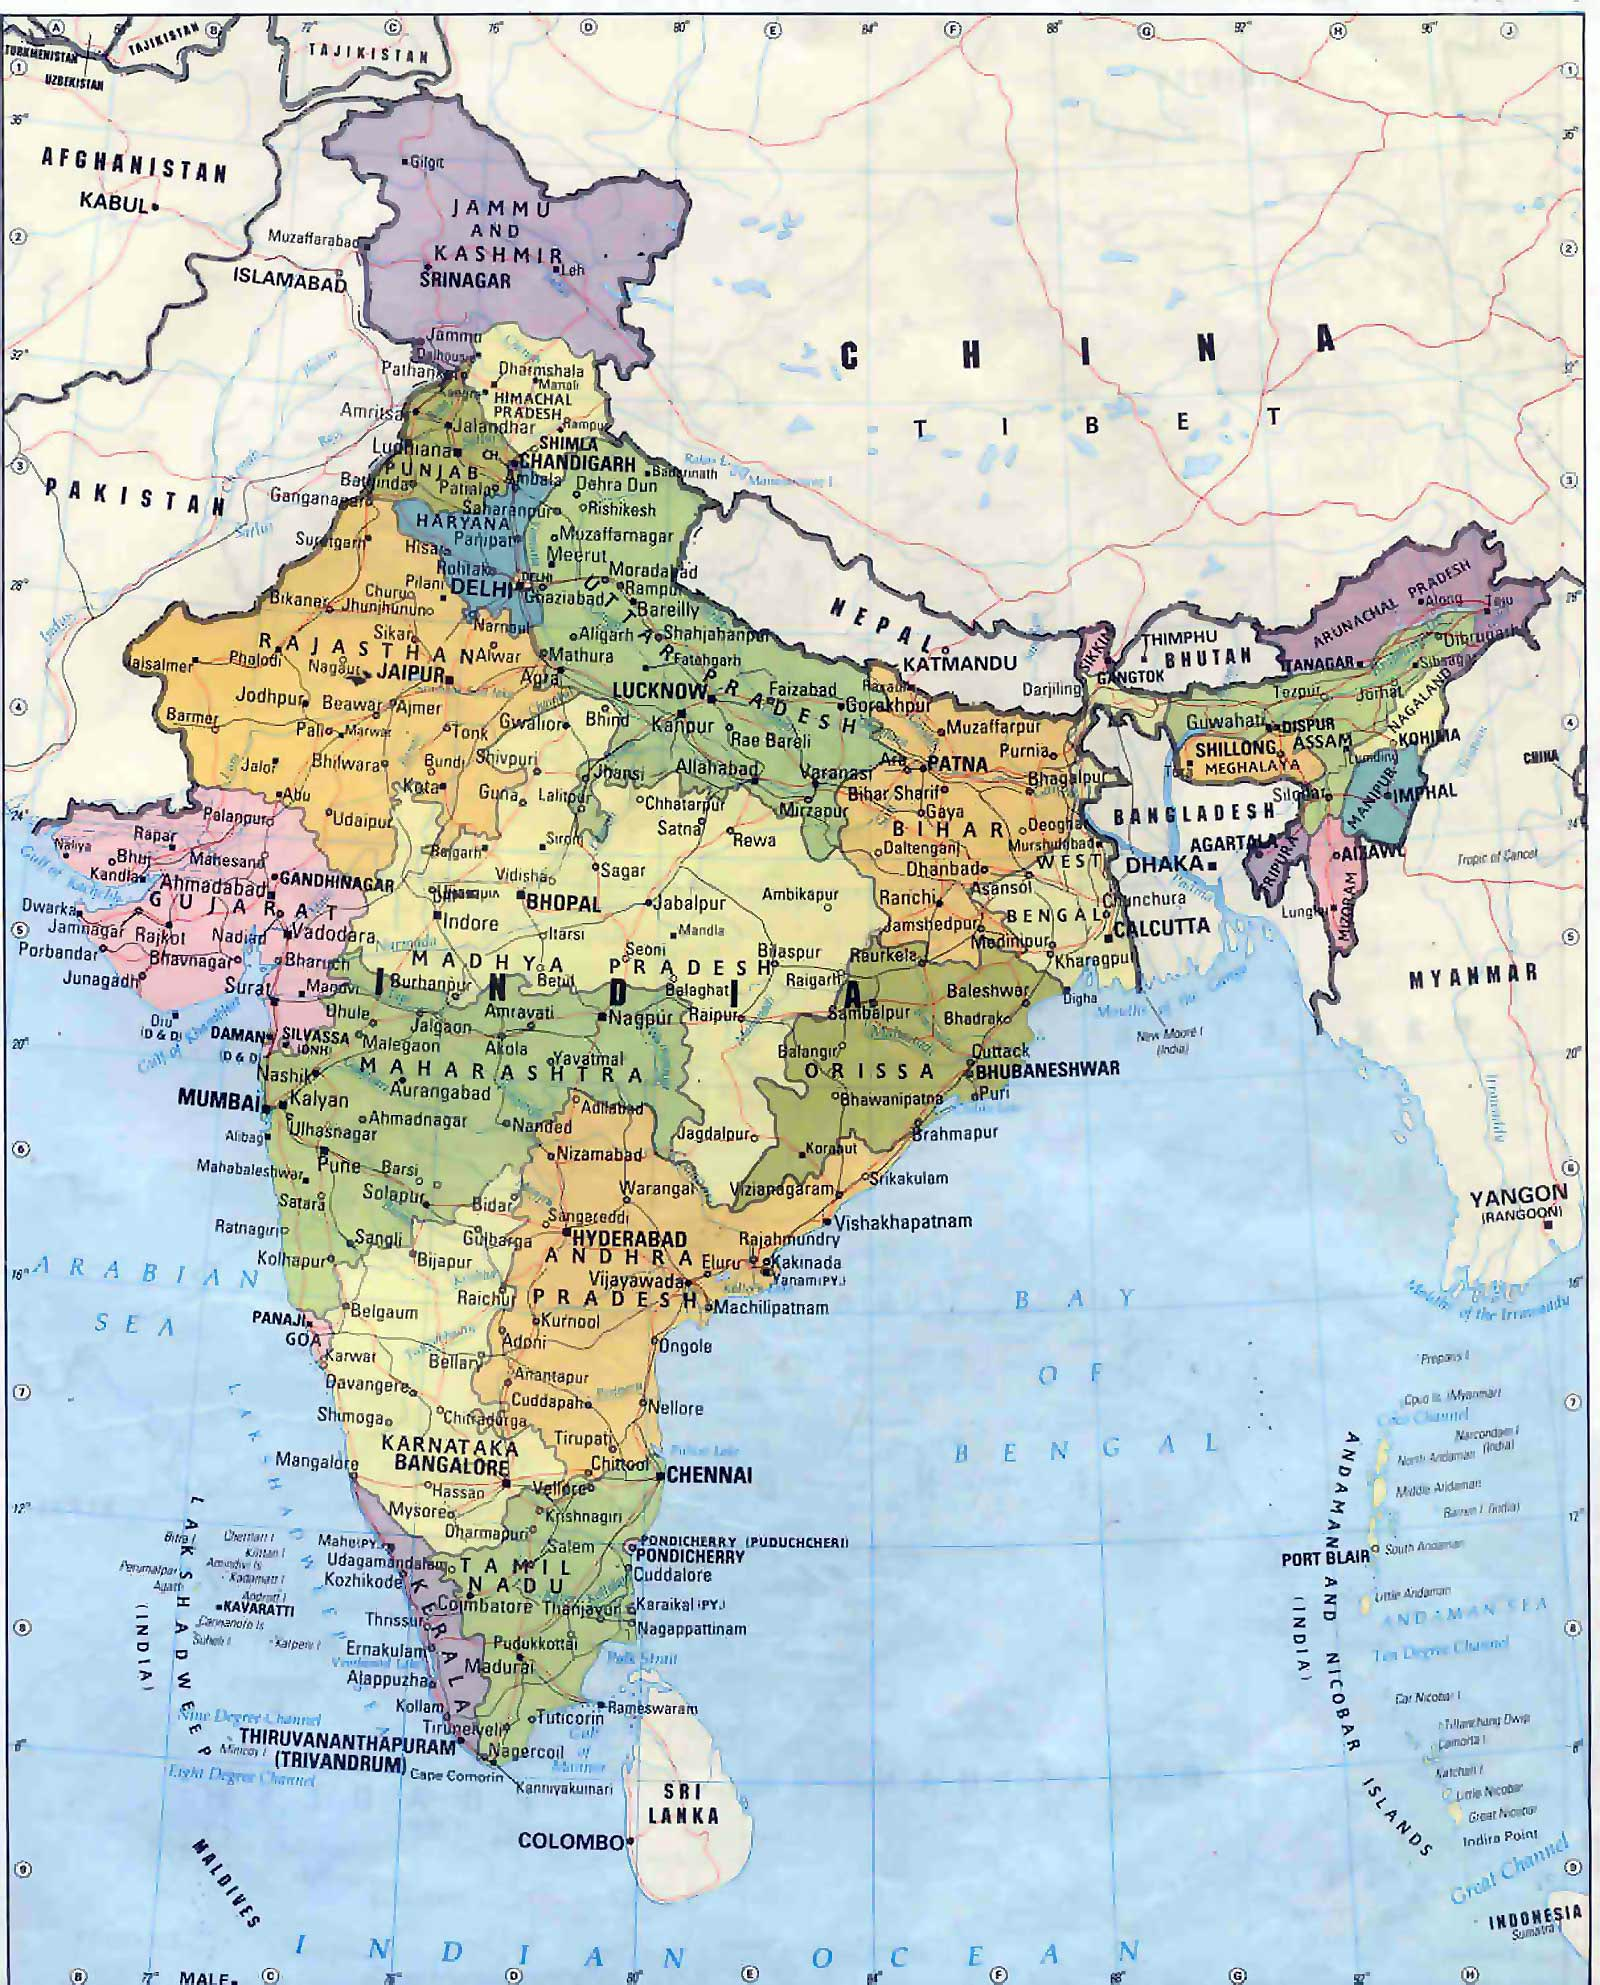 India Maps | Printable Maps of India for Download on printable map of india, globe with india, map south africa, map the us, map south korea, map saudi arabia, business with india, map spain, map russia, map sri lanka, map japan, map southeast asia, game with india, map nigeria, map of india map, map of india landforms, map east africa, map singapore, map west asia, plain map of india,